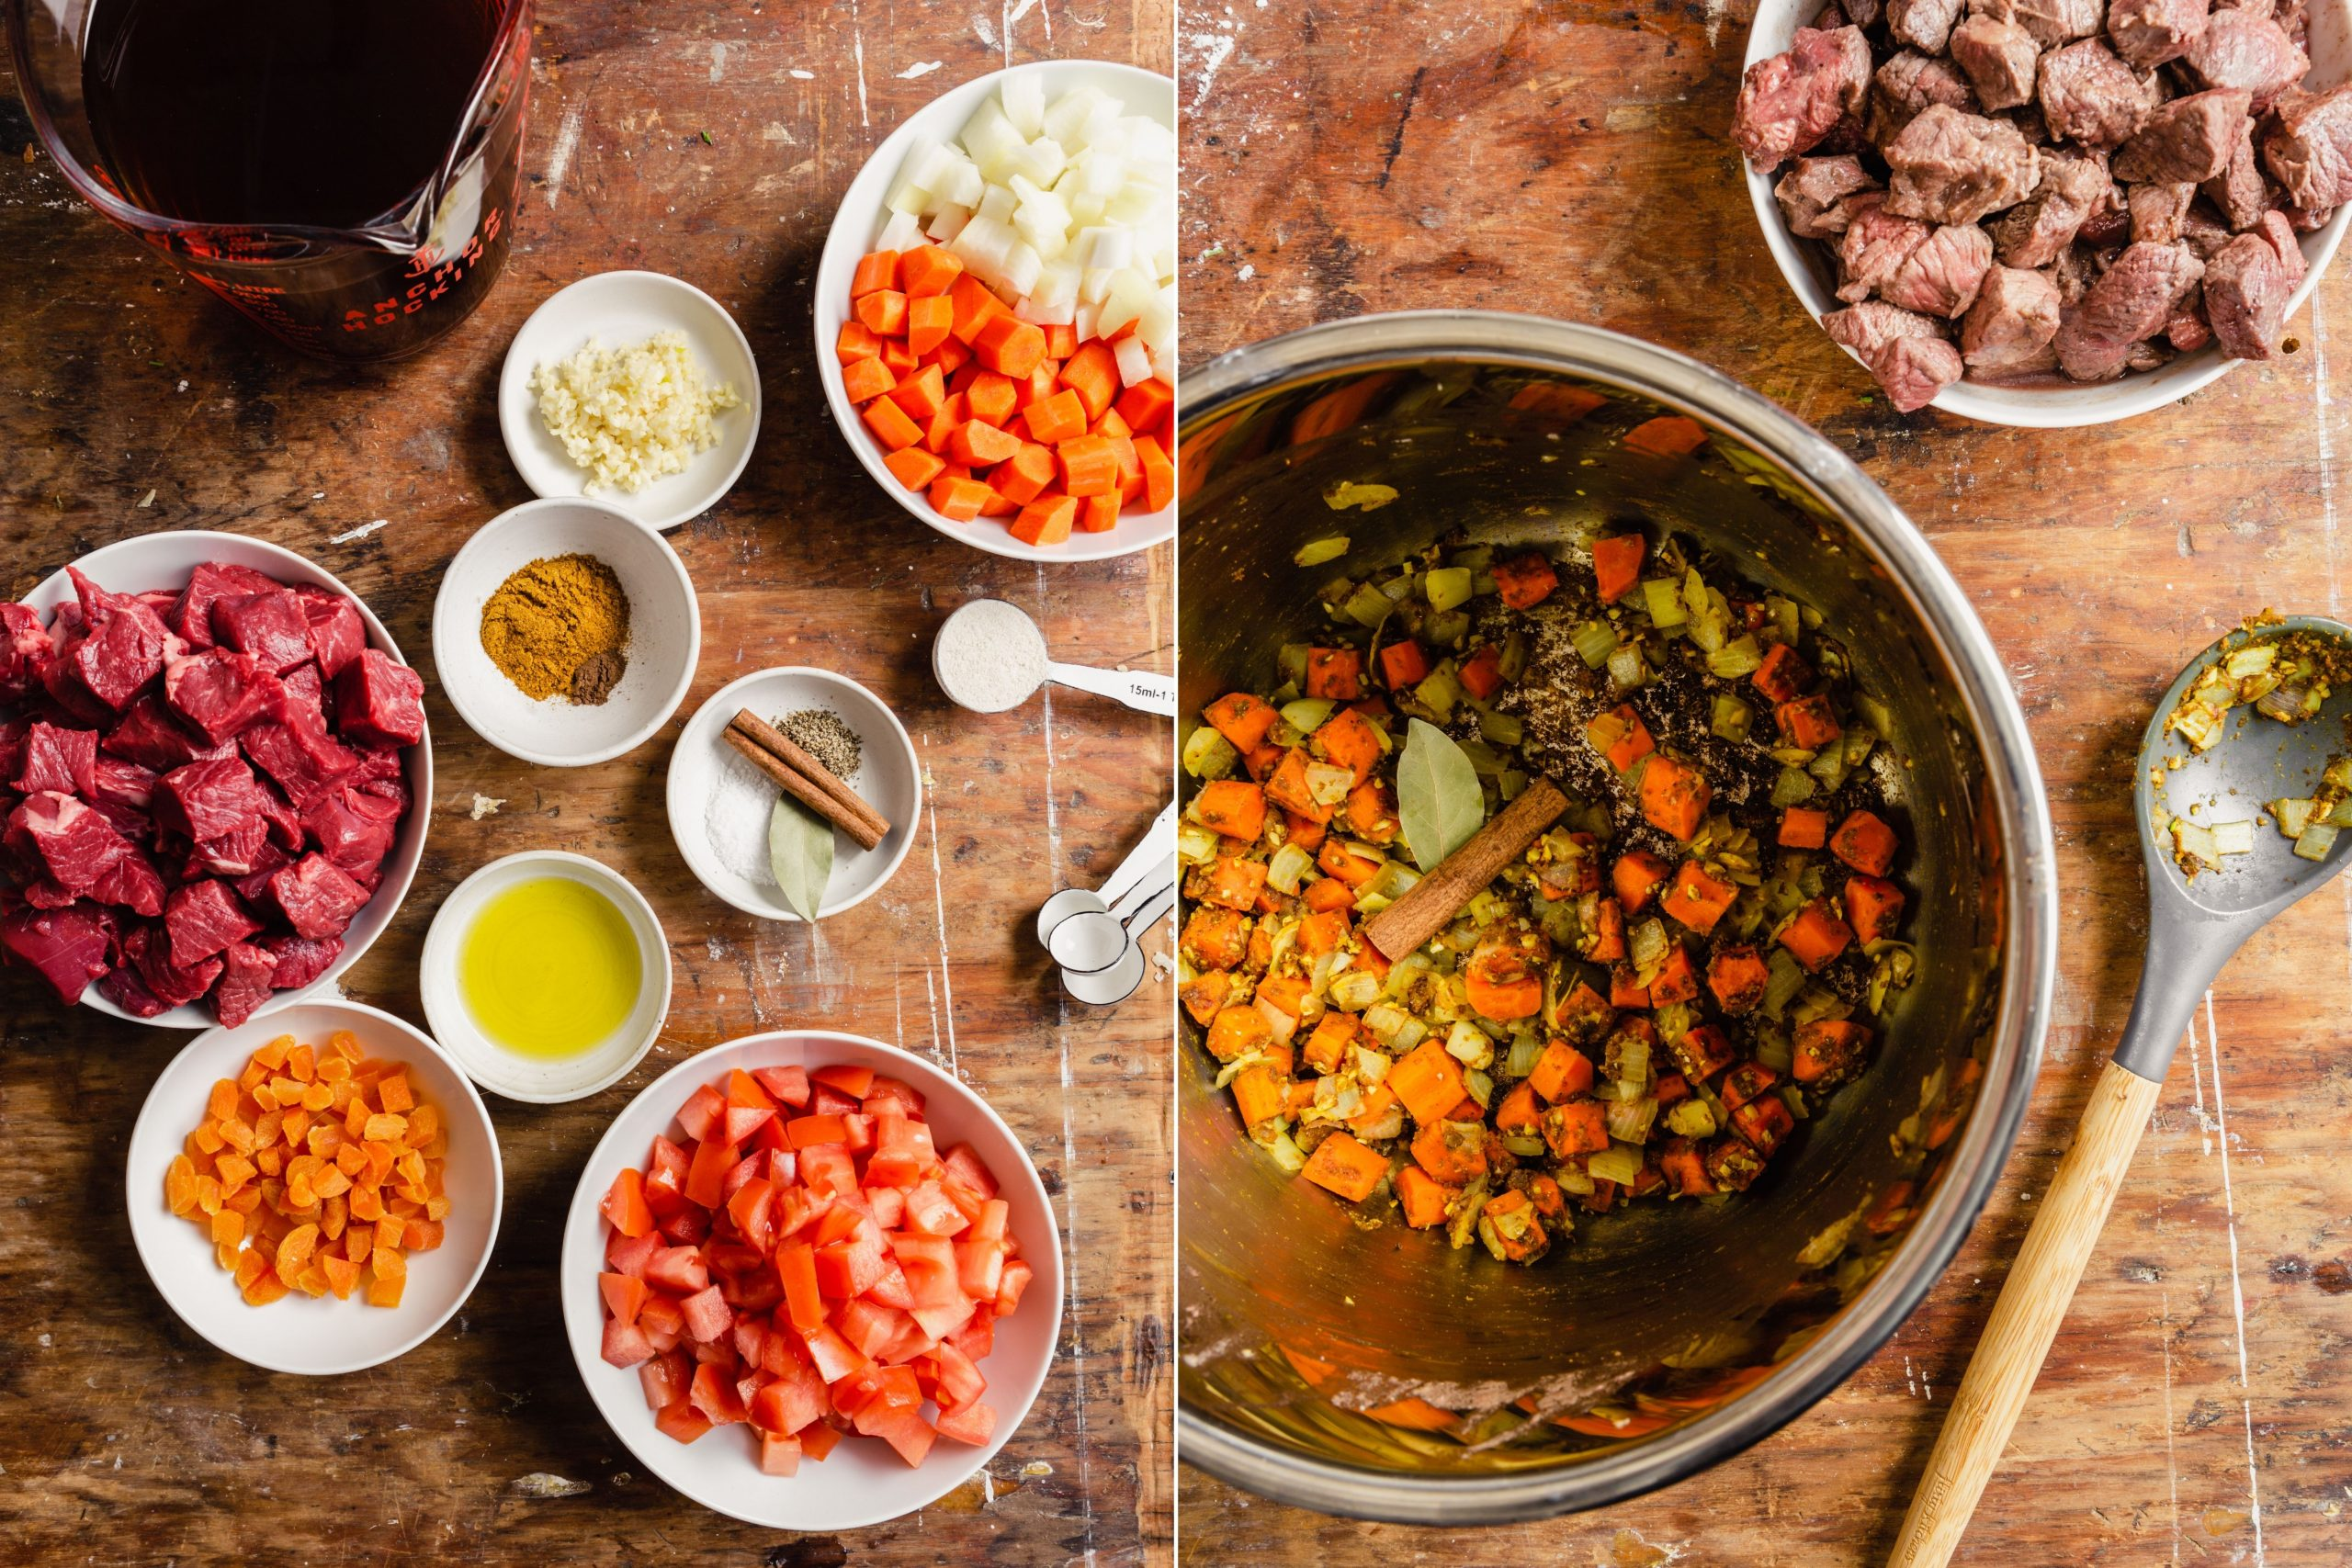 step-by-step grid of images showing how to make Instant Pot Lamb Stew